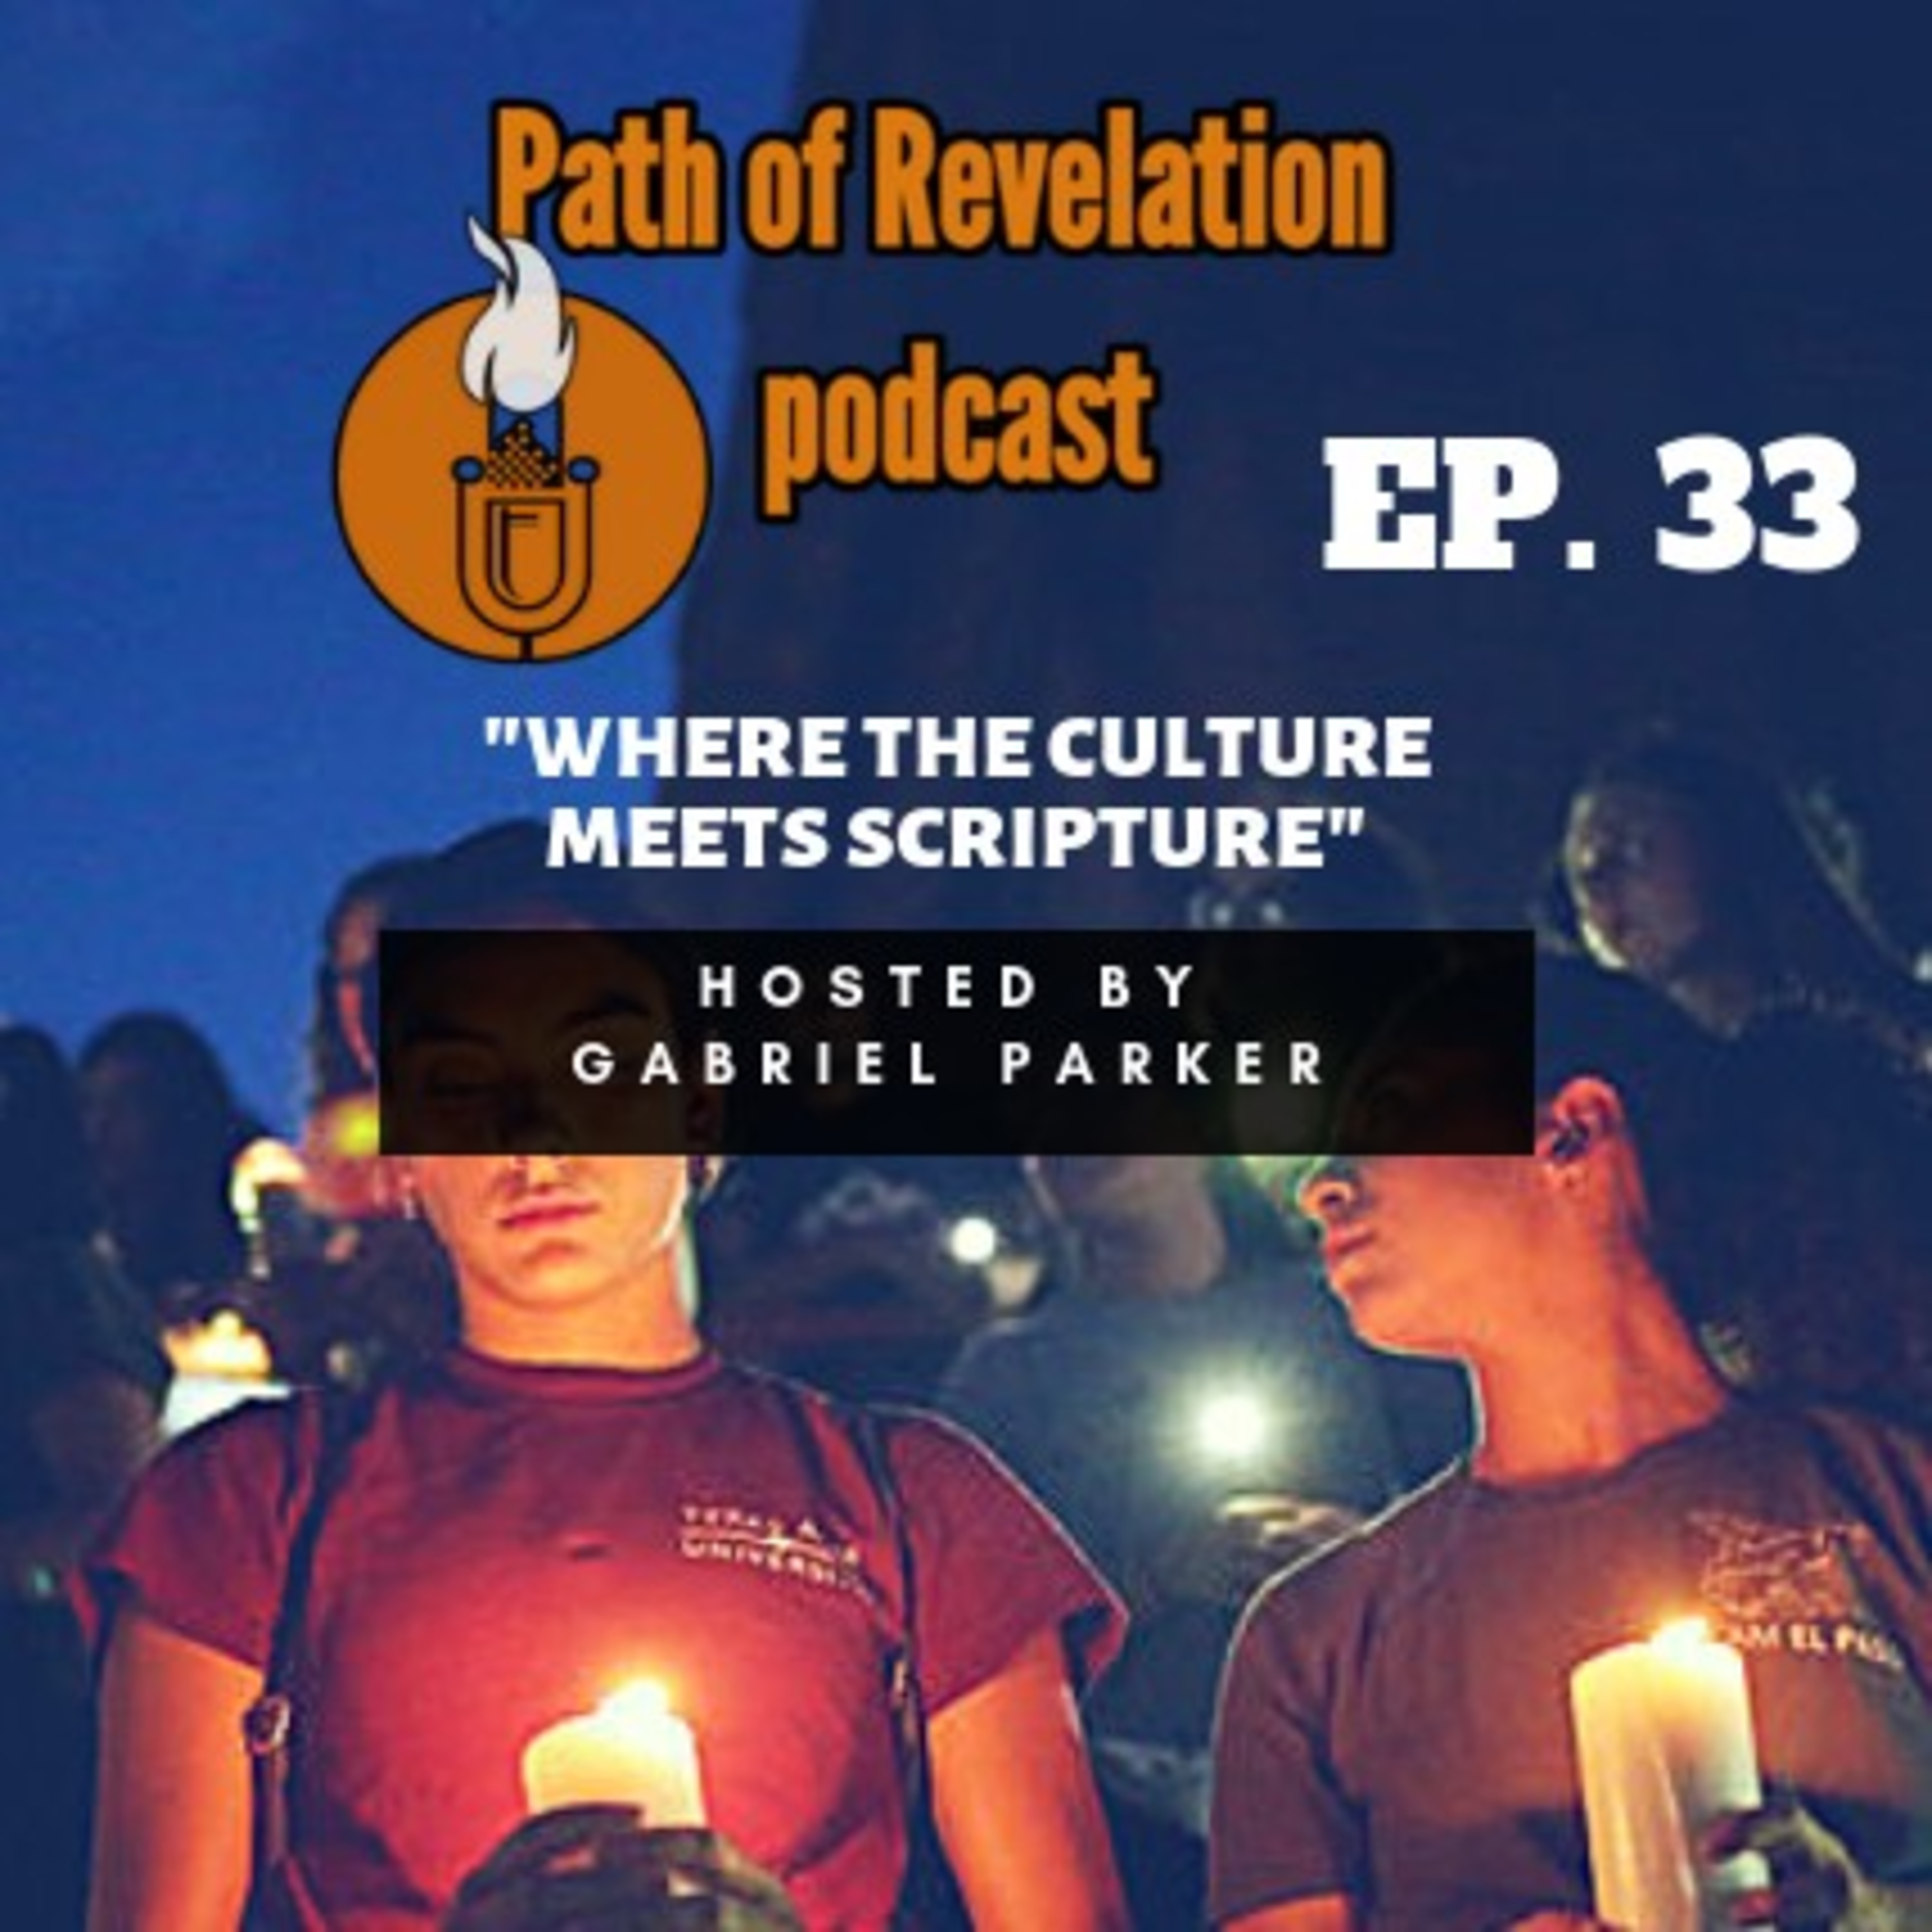 Path of Revelation Podcast: Episode 33